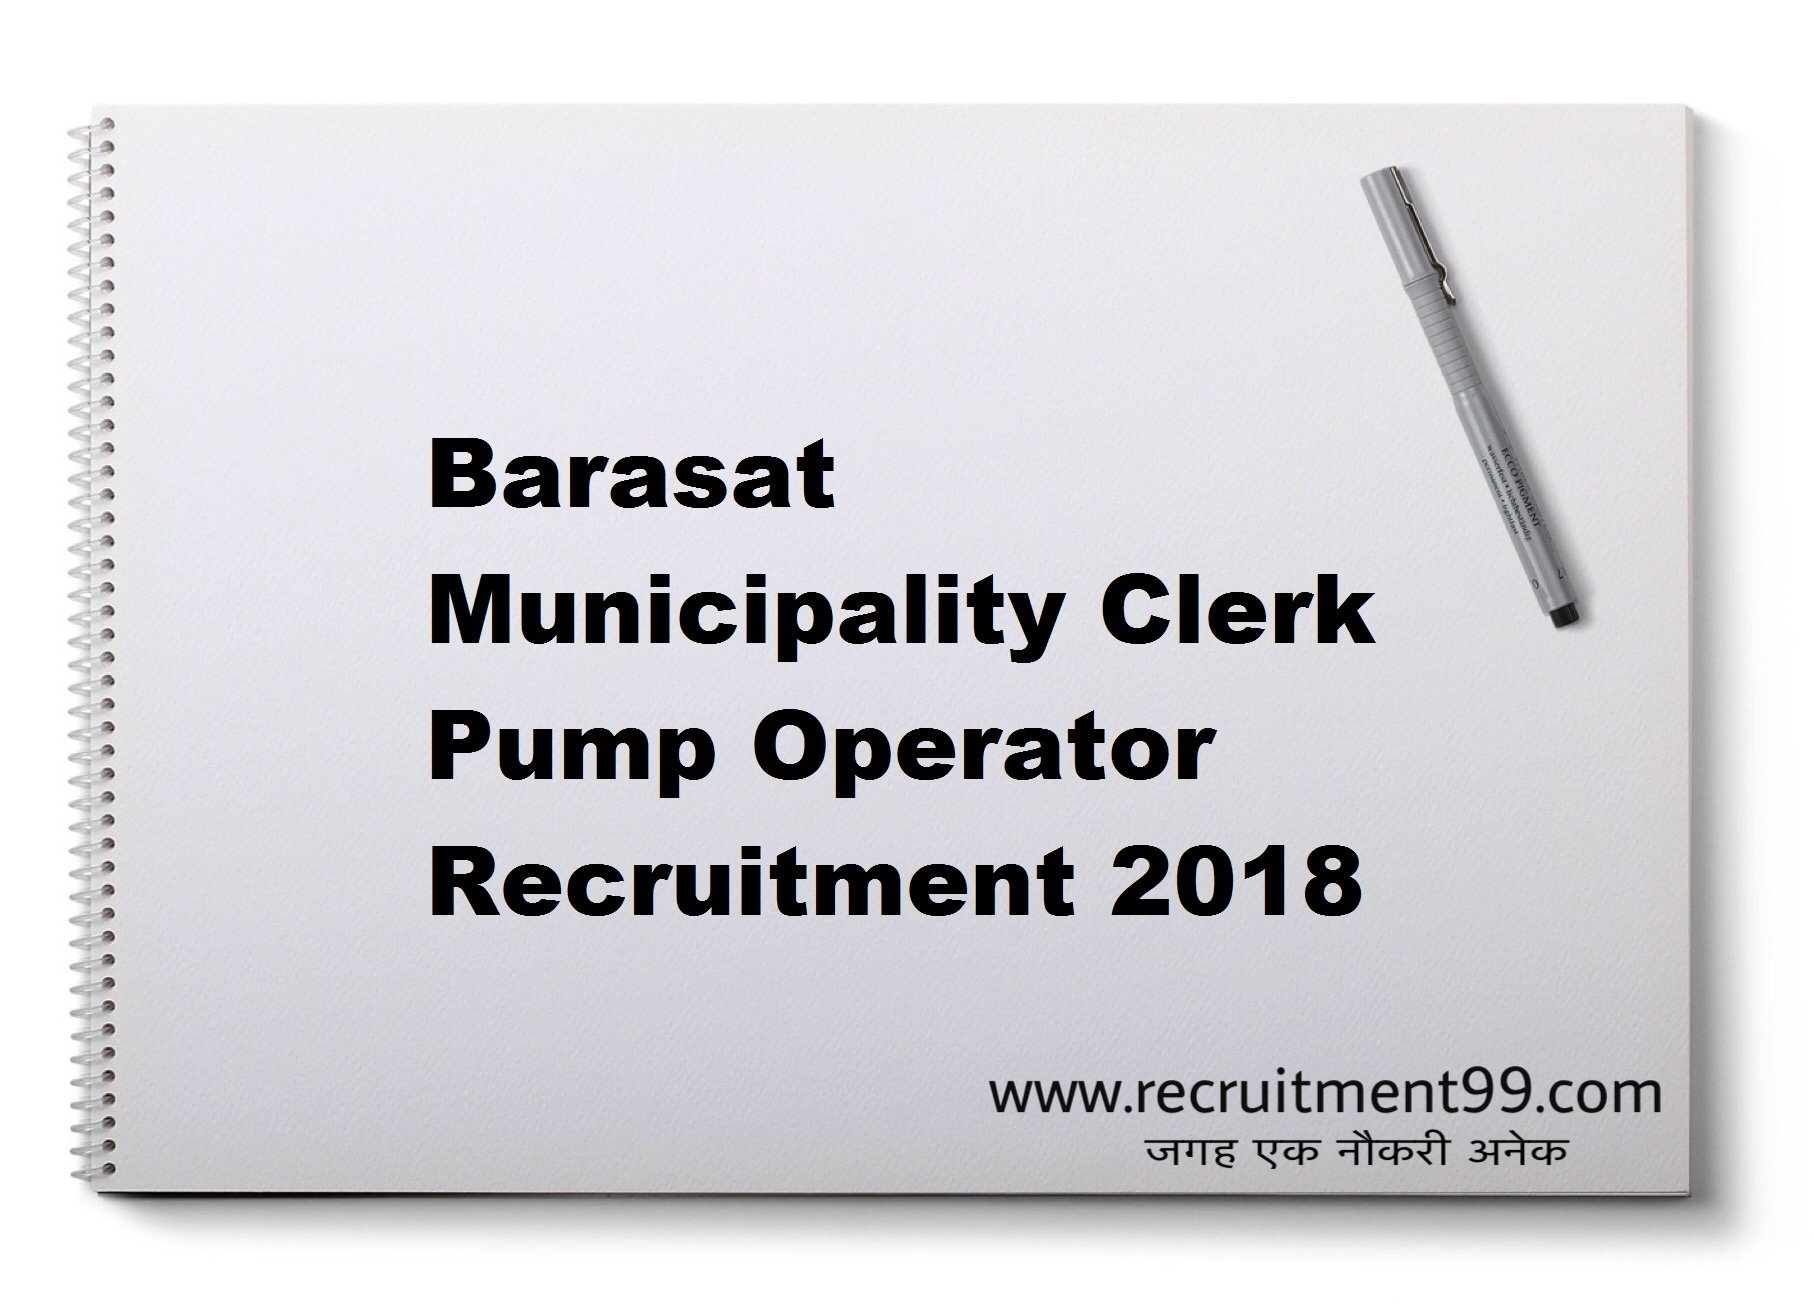 Barasat Municipality Clerk Pump Operator Recruitment Admit Card Result 2018